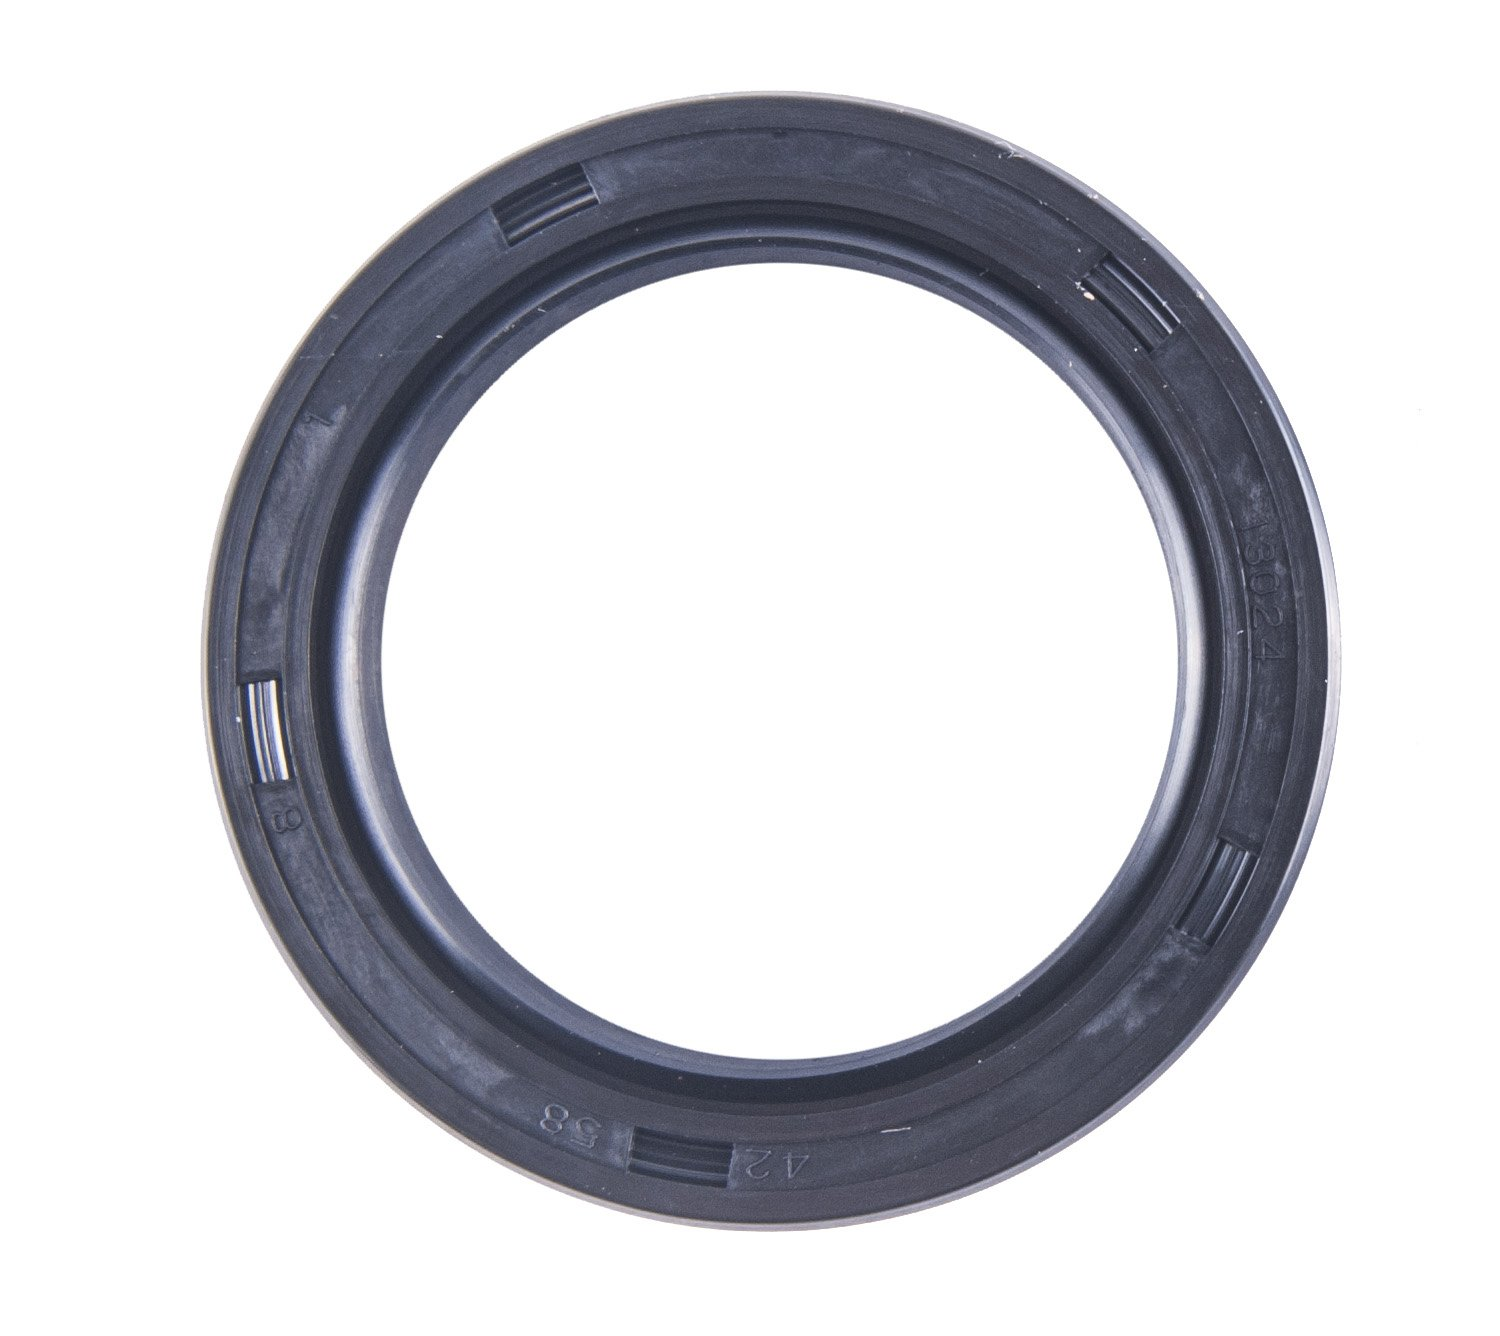 East Lake Axle Front differential seal kit compatible with Honda TRX 420 Rancher 2014 2015